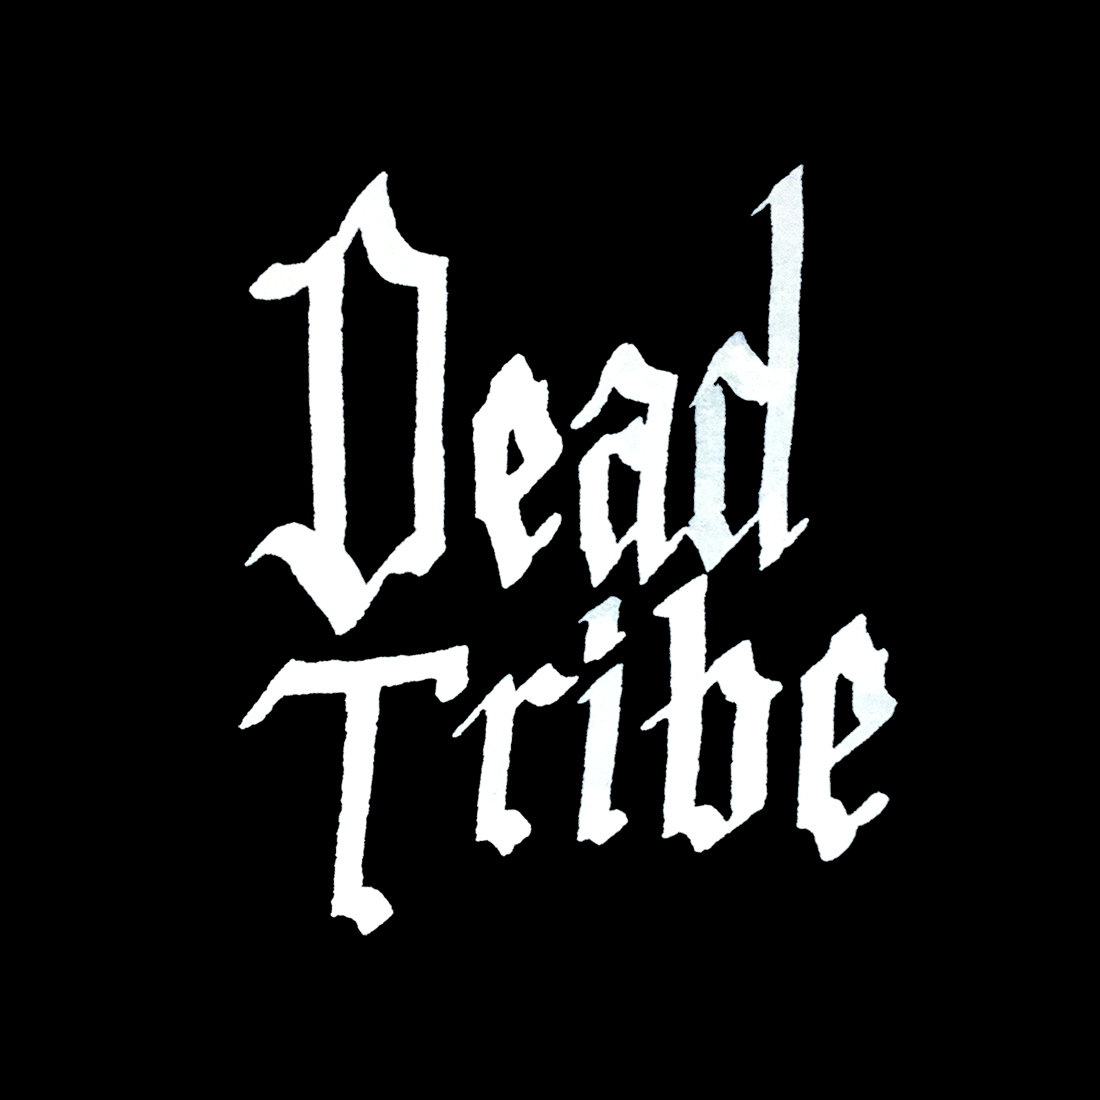 A symbol of pain dead tribe dead tribe image buycottarizona